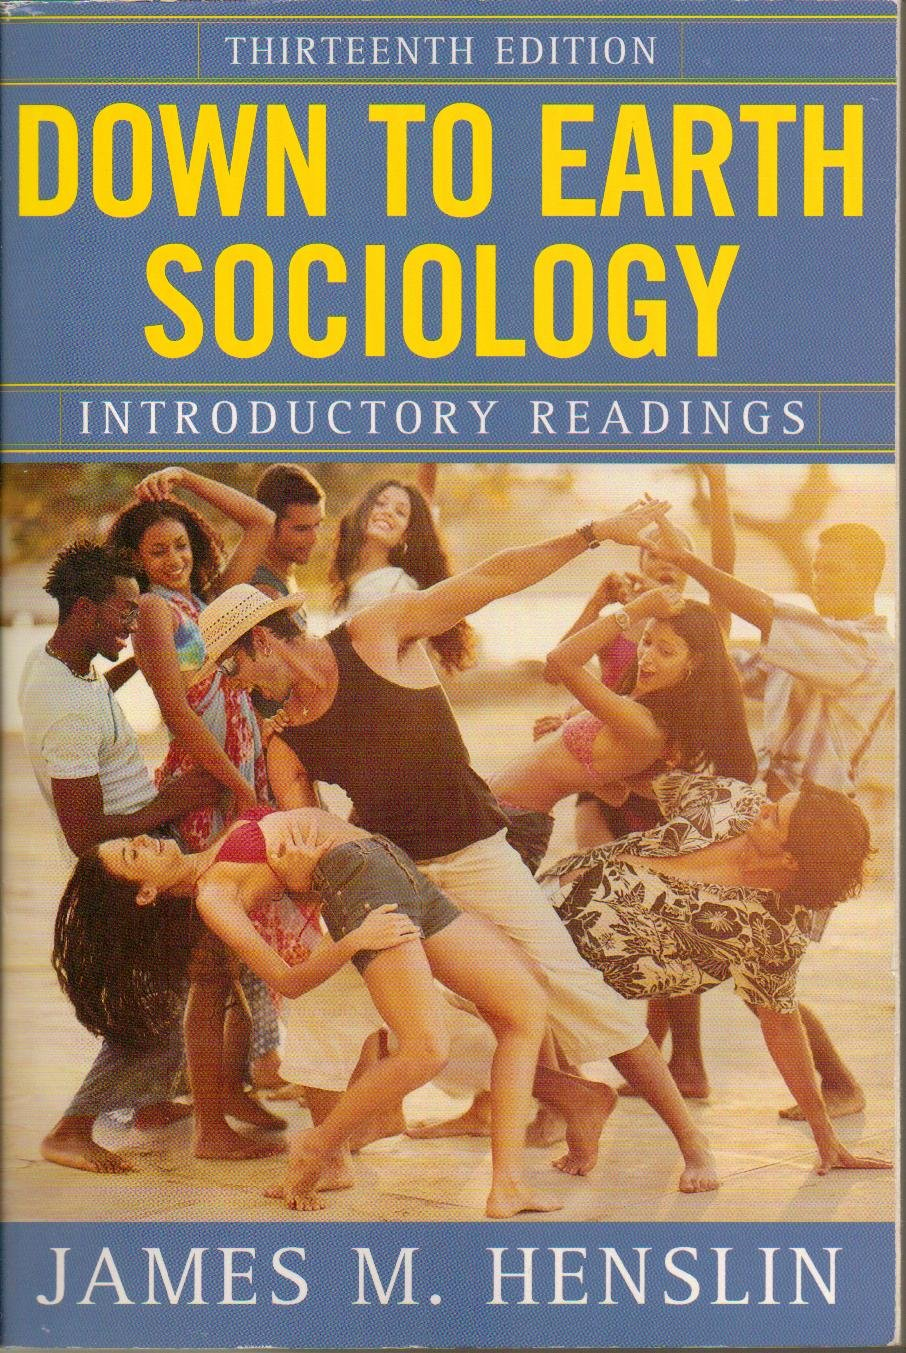 Down to Earth Sociology Introductory Readings 13th Edition - Paperback - Thireenth Edition, 2nd Printing 2003 PDF